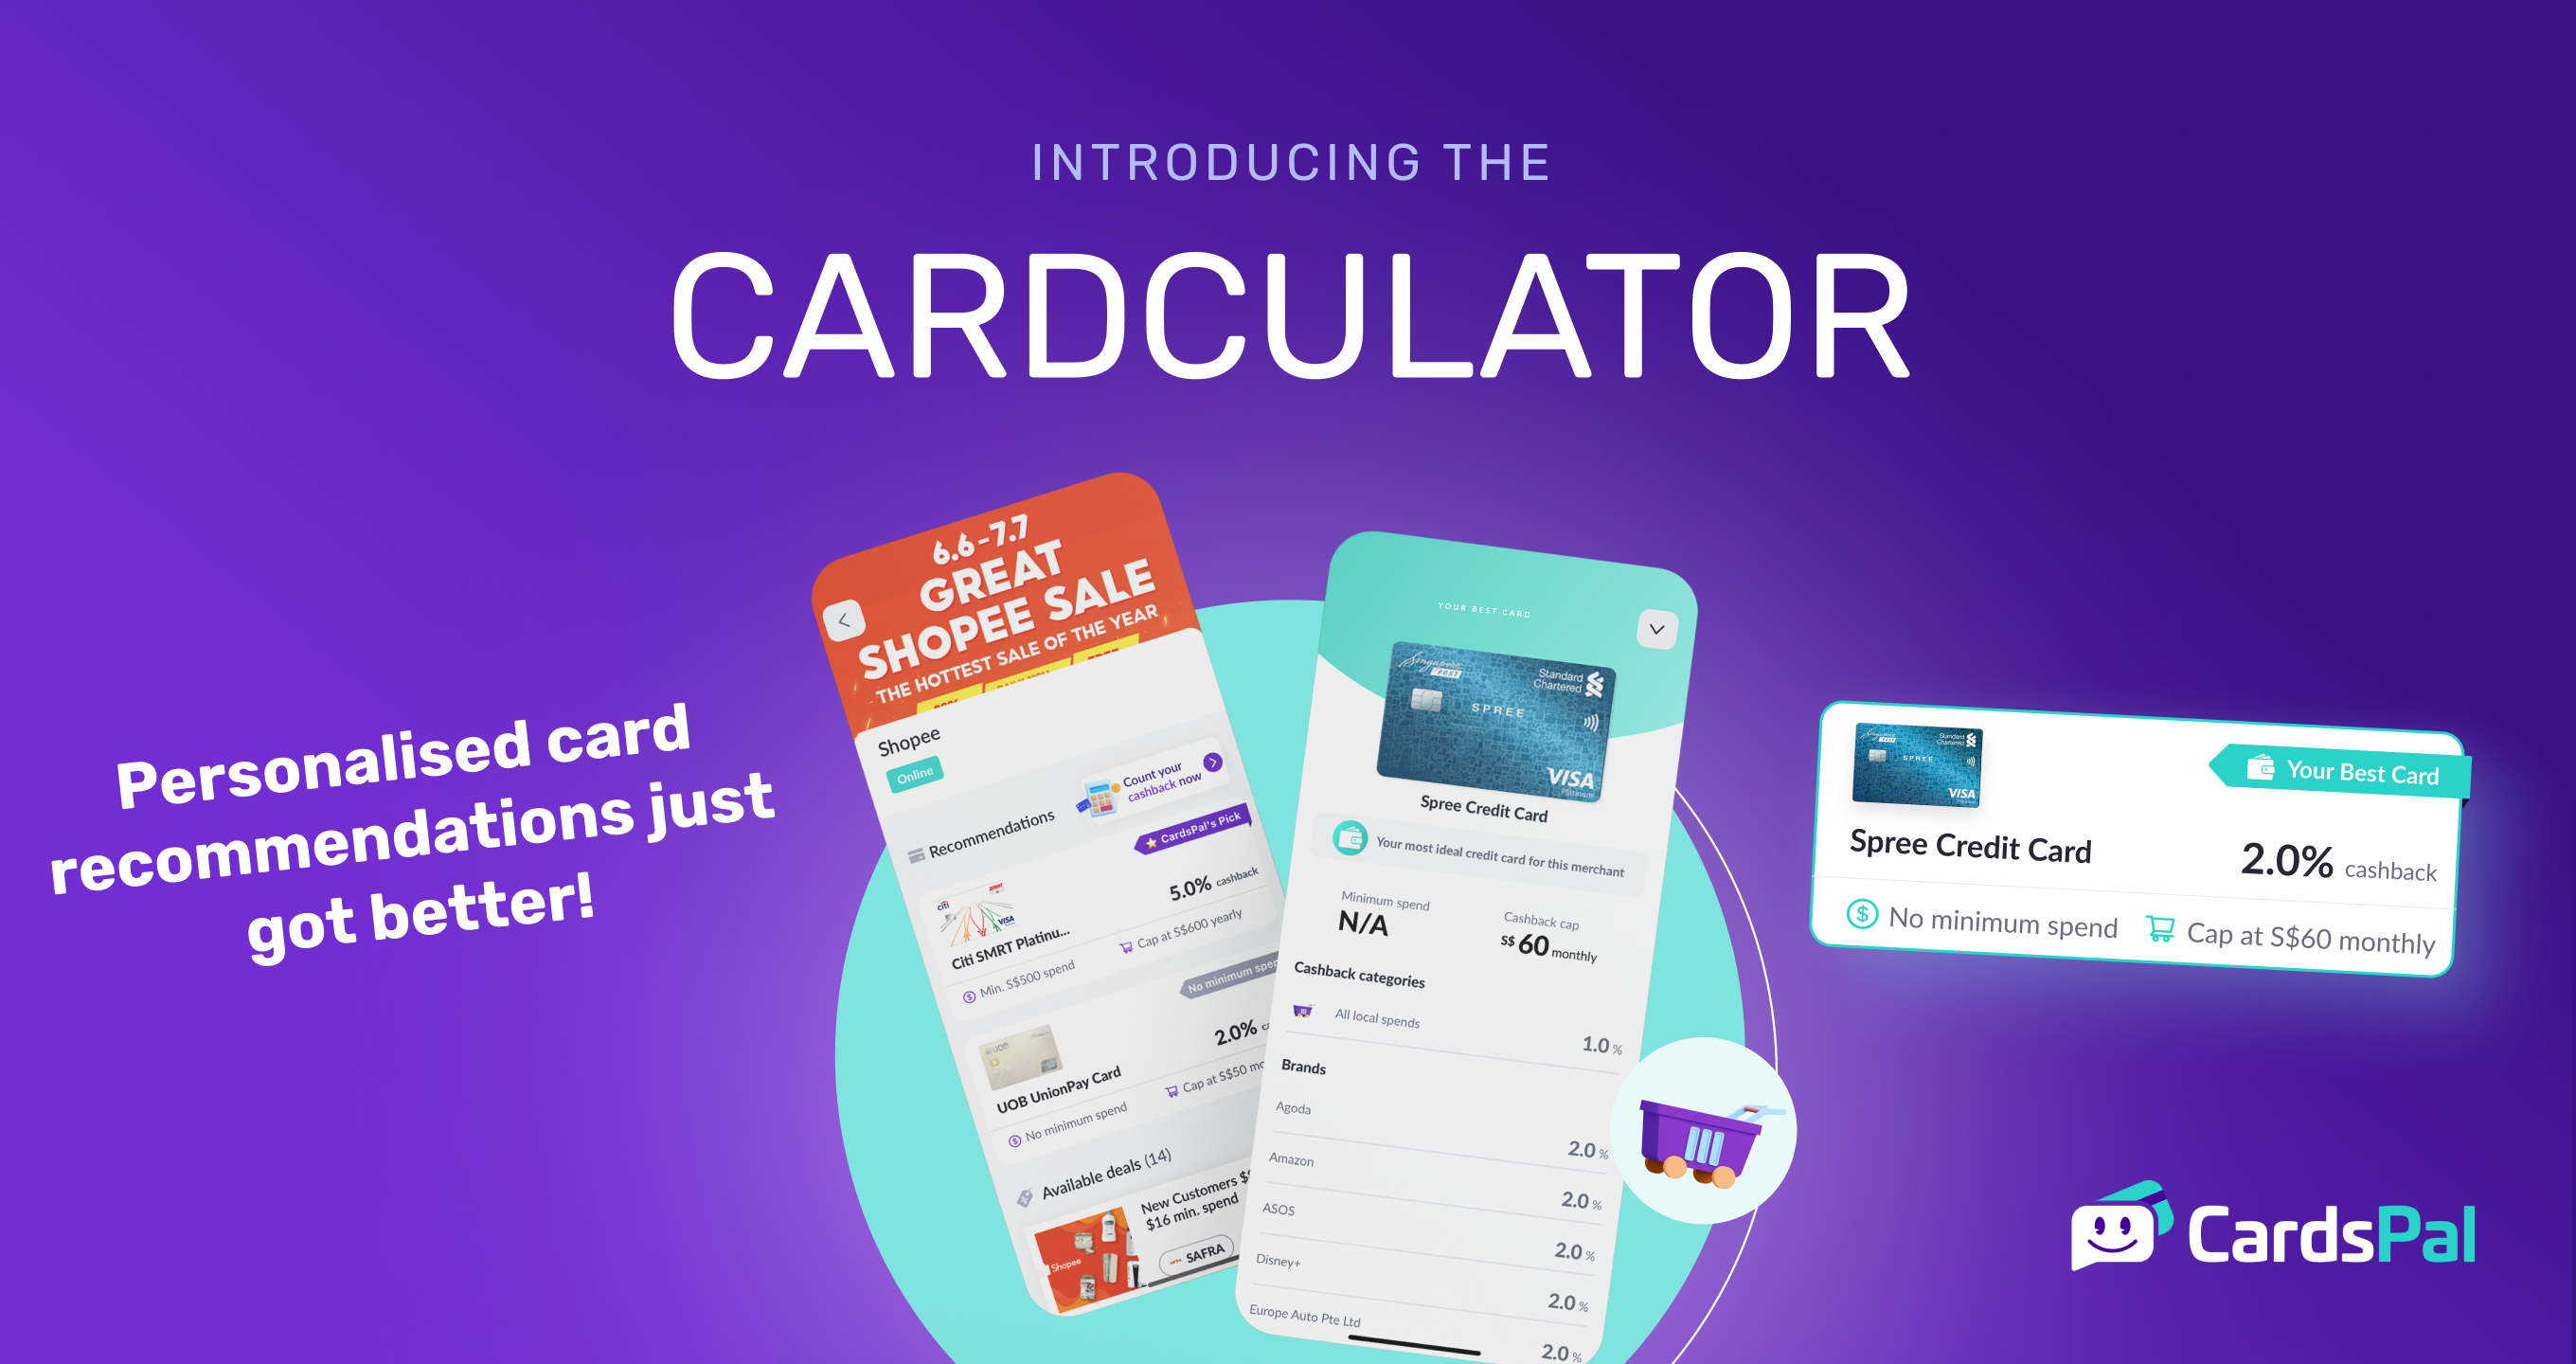 Here's how you can save more with CardsPal's new Cardculator!